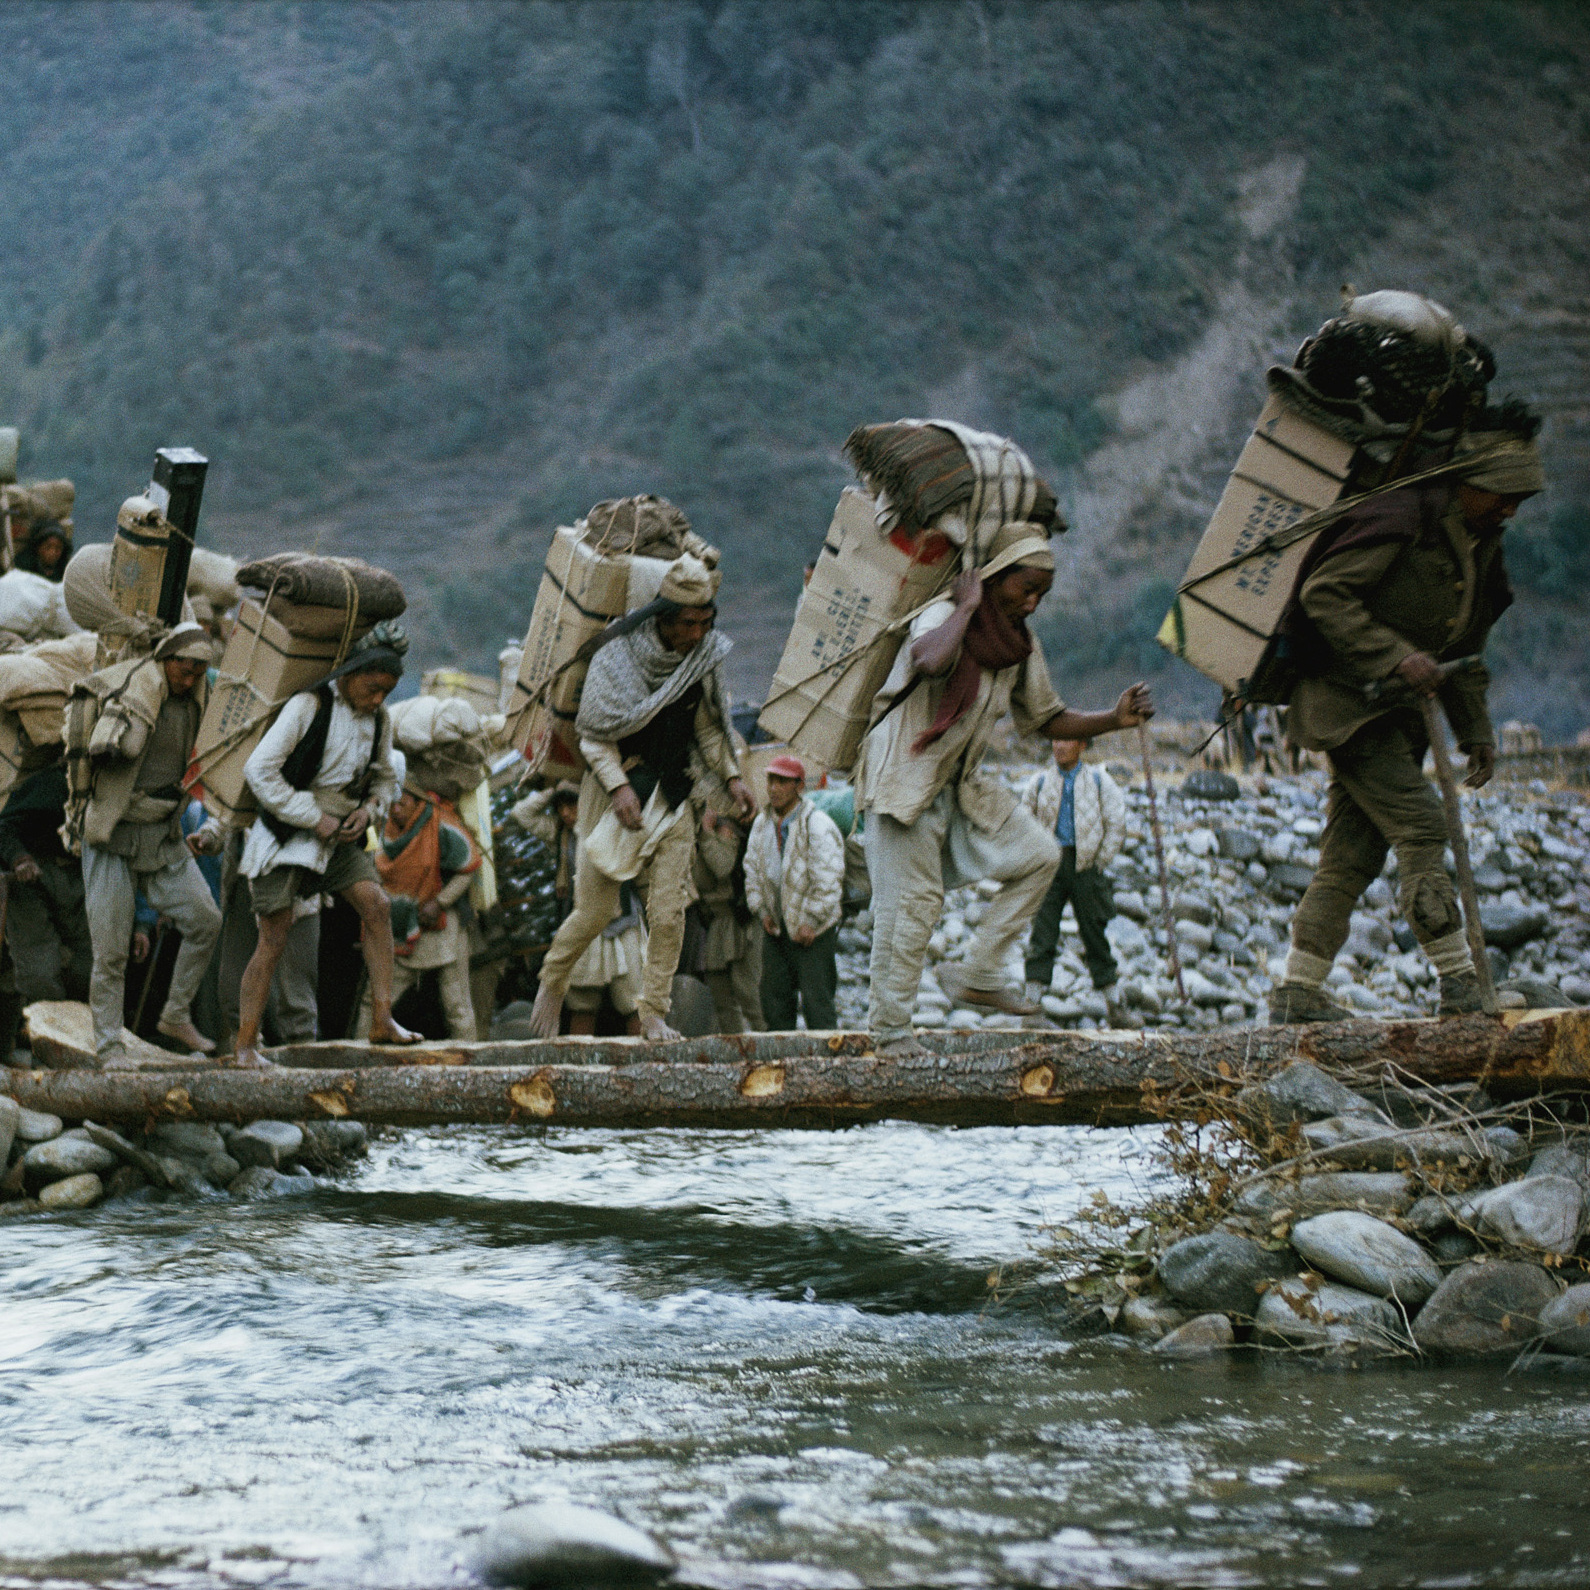 The 1963 American Mount Everest Expedition included more than 900 porters, who carried 27 tons of supplies to Base Camp. During that expedition, four men became the first Americans to summit Everest.